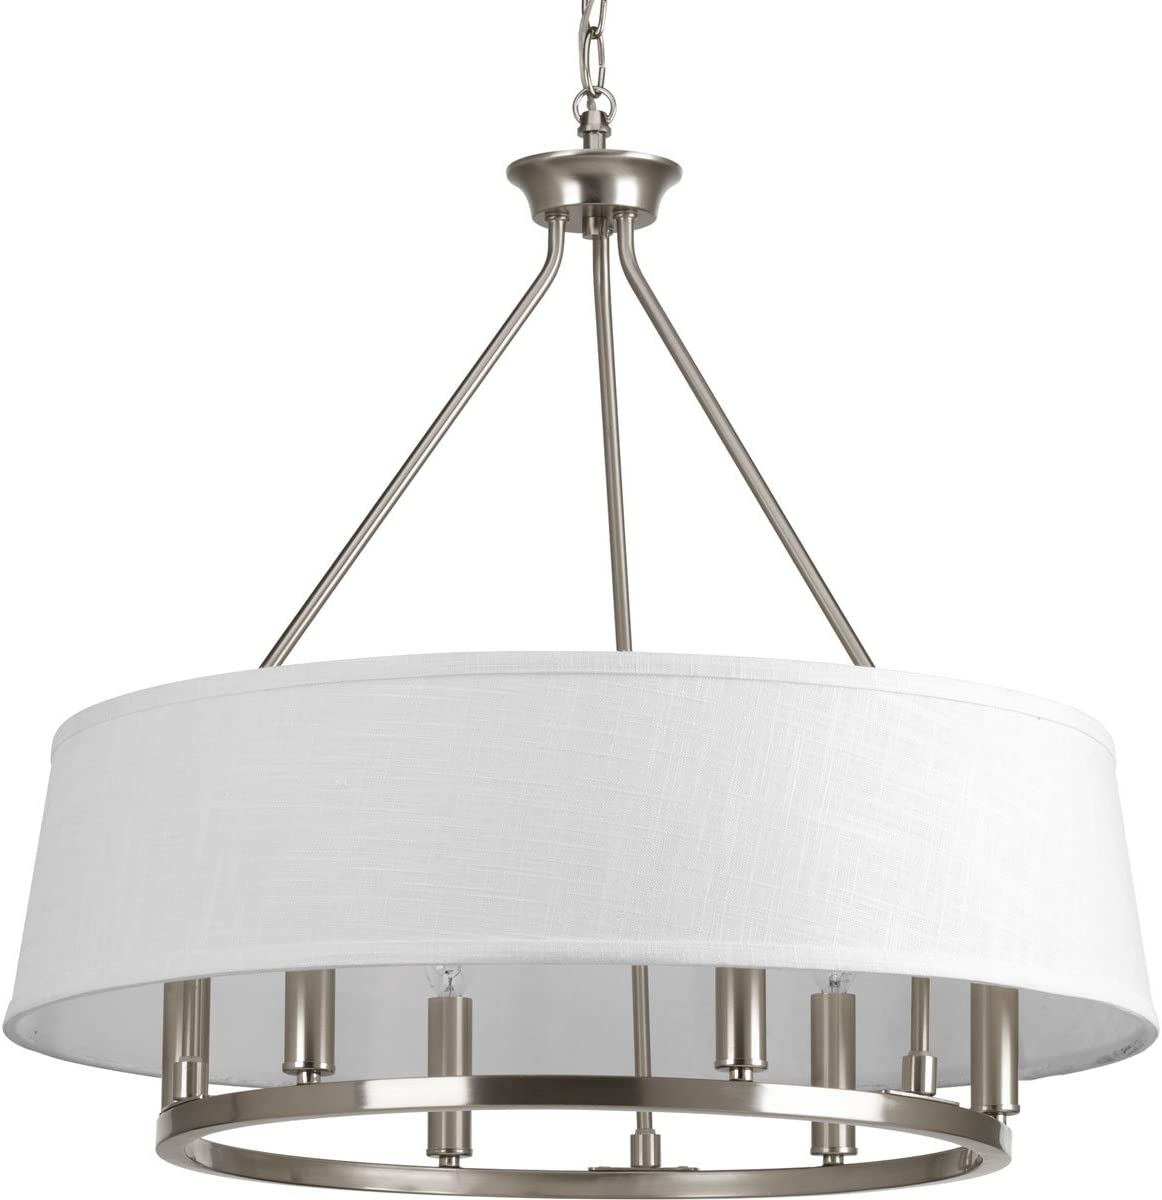 Progress Lighting P4618-09 Transitional Six Light Chandelier from Cherish Collection in Pwt, Nckl, B S, Slvr. Finish, Brushed Nickel